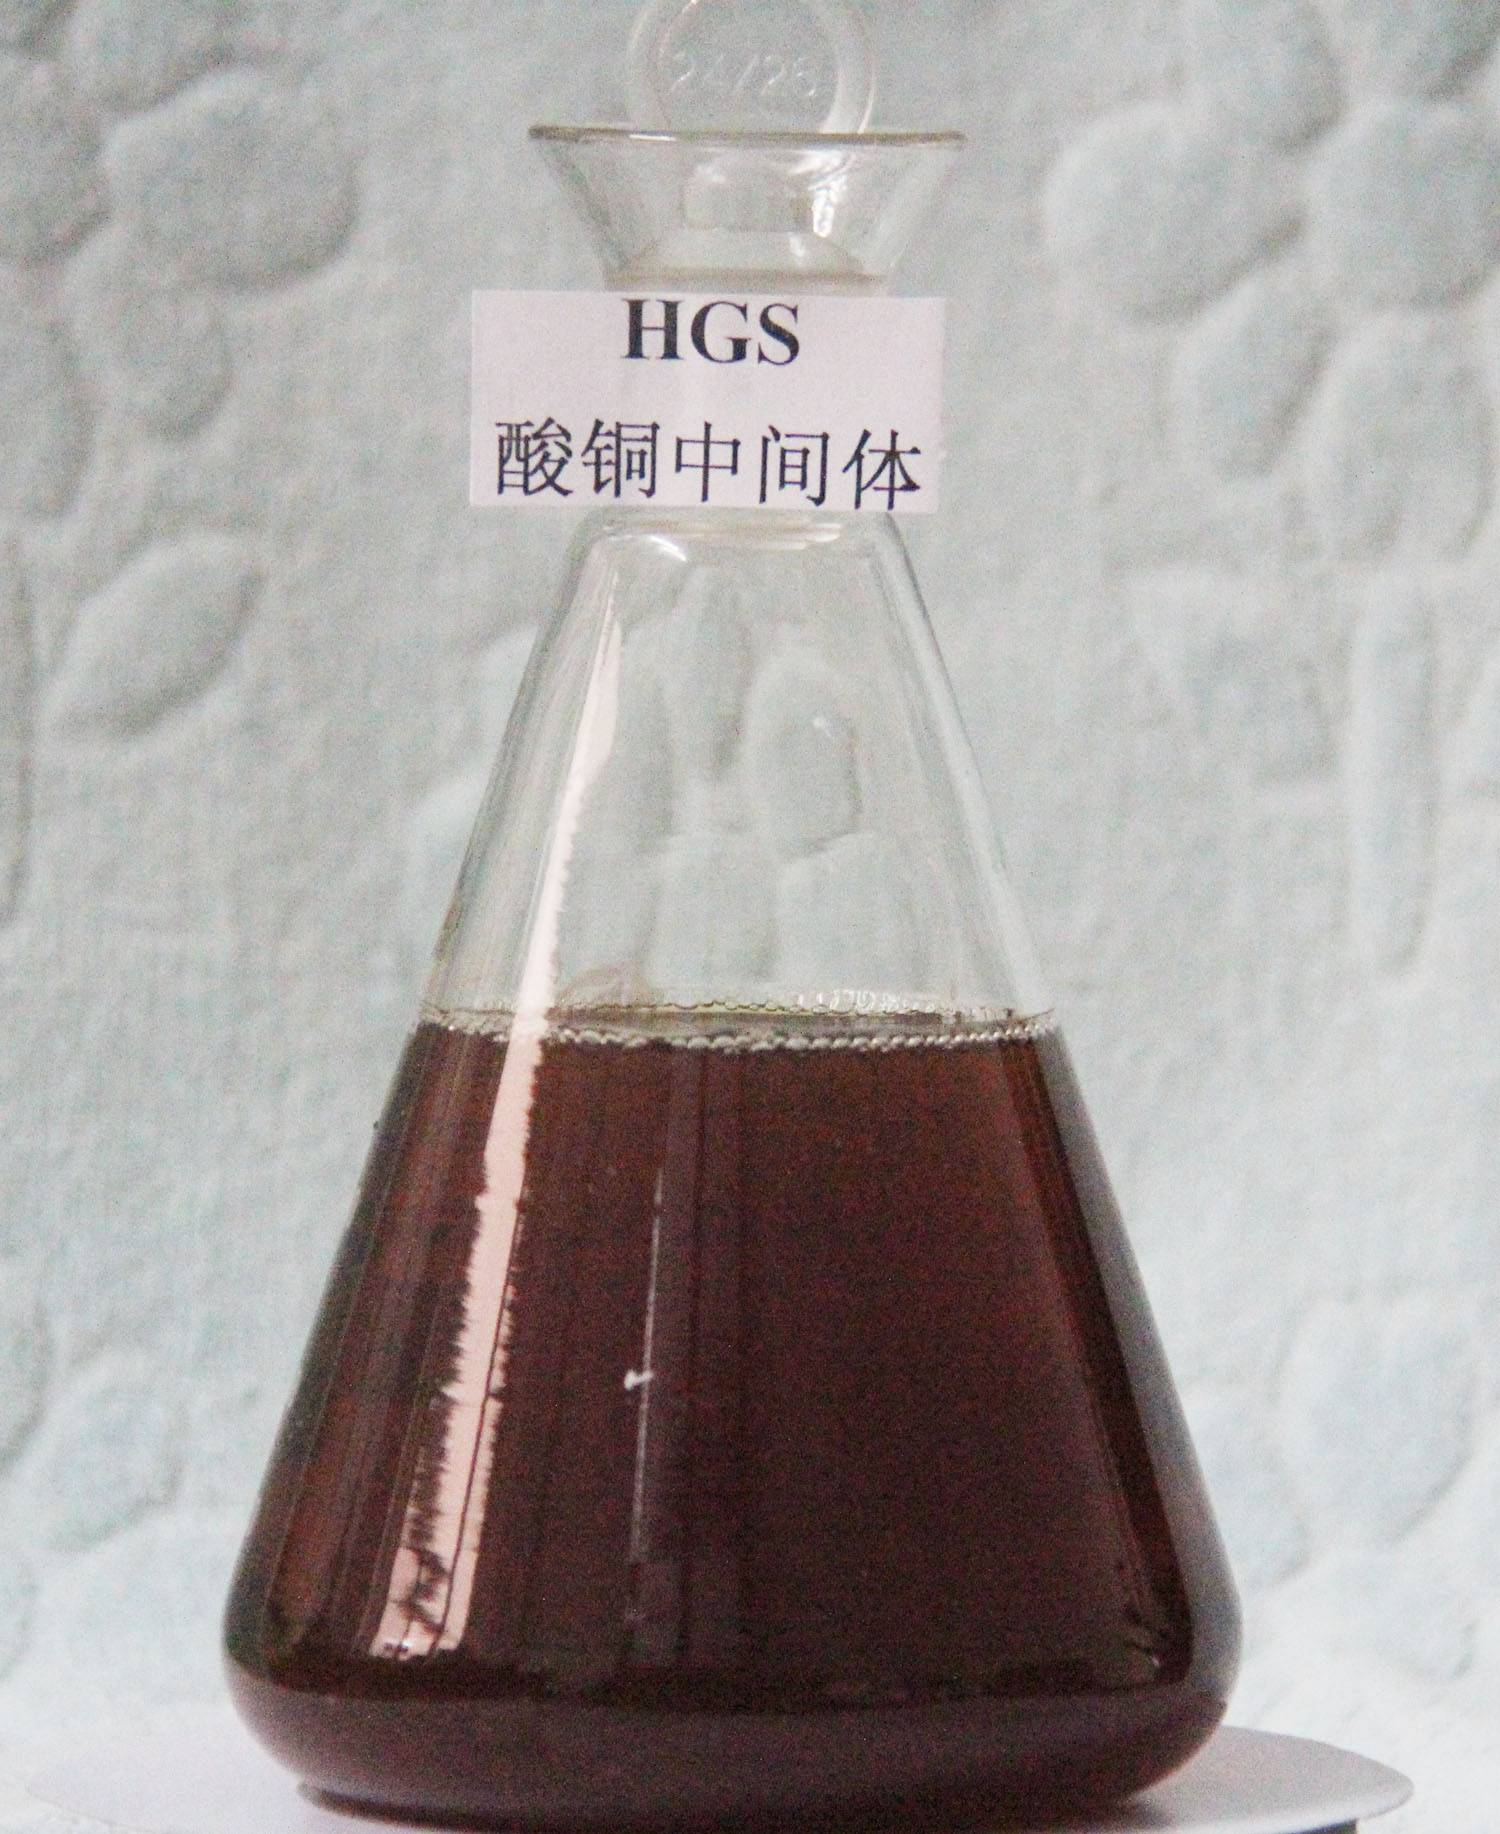 HGS Acid copper brightener surface finishing compounds